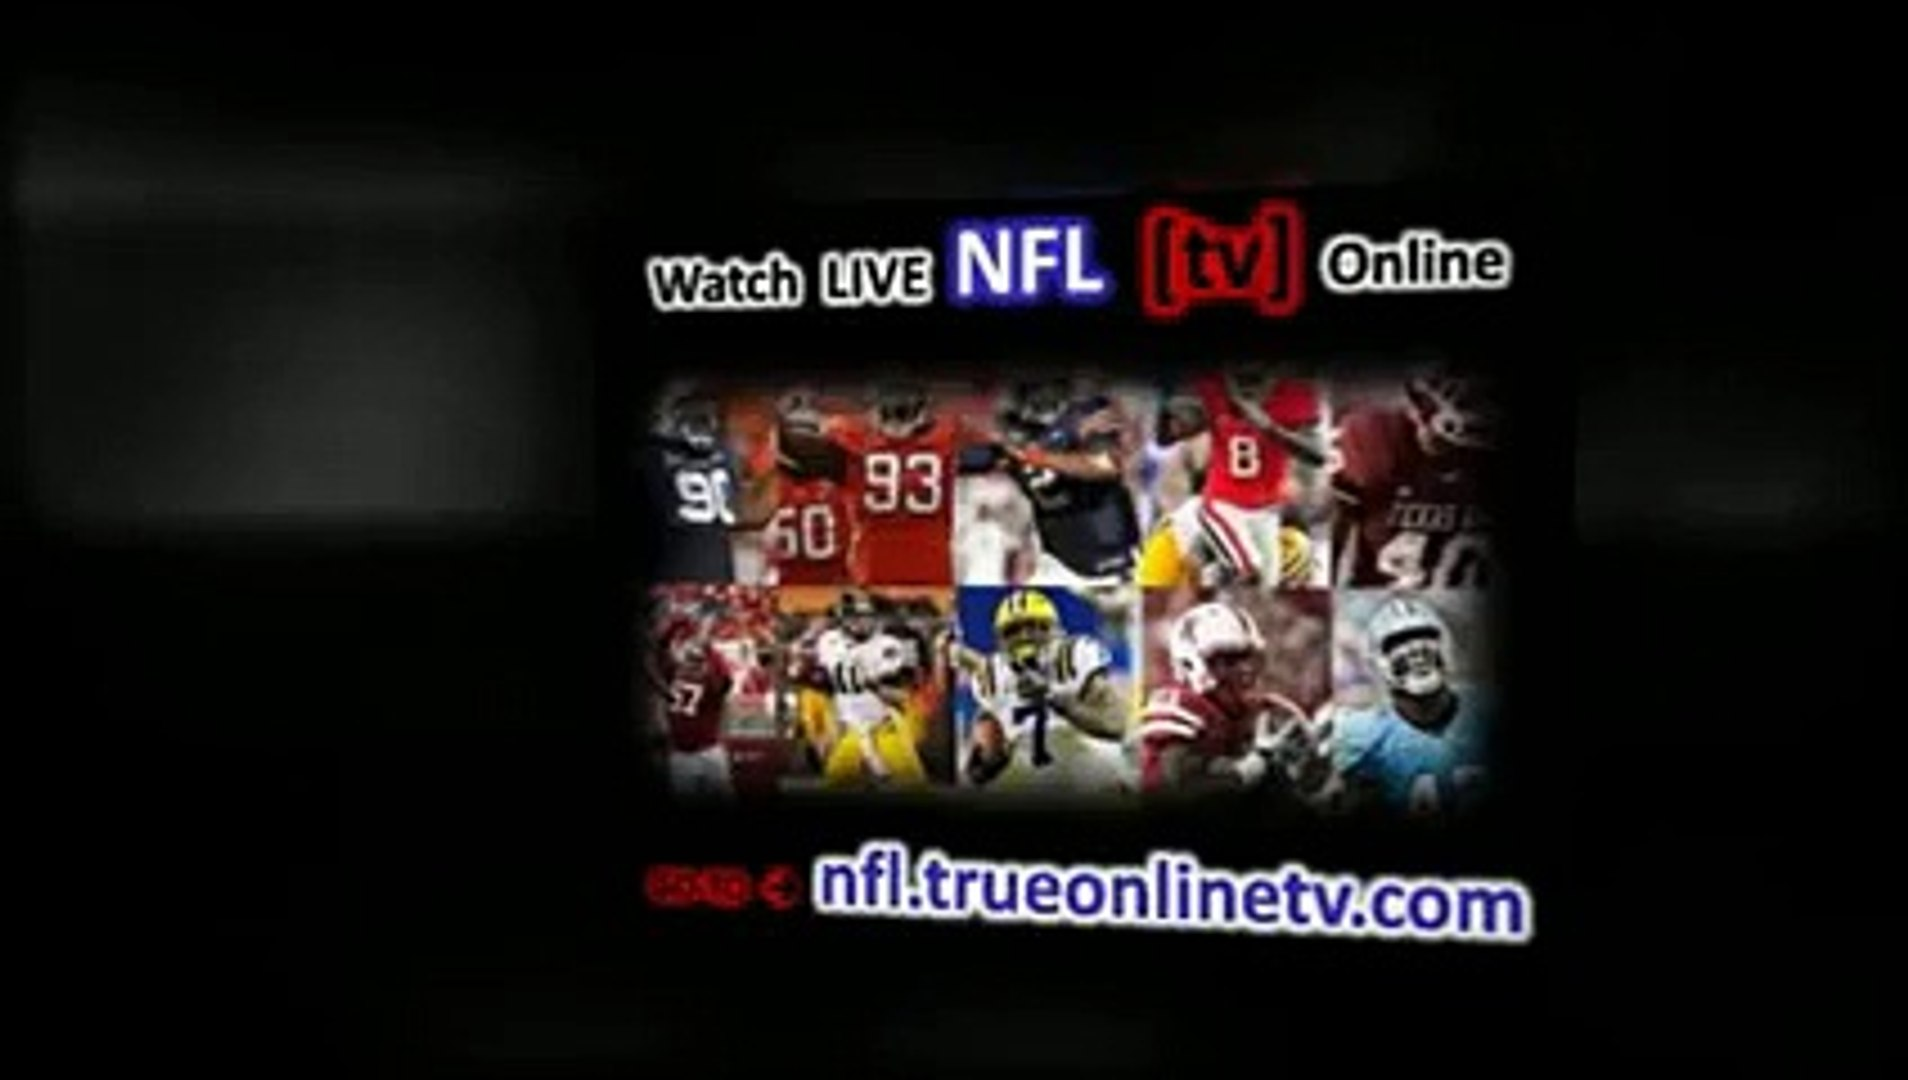 Watch Ryan Fitzpatrick jets colts 2015 nfl week 2 games live streaming